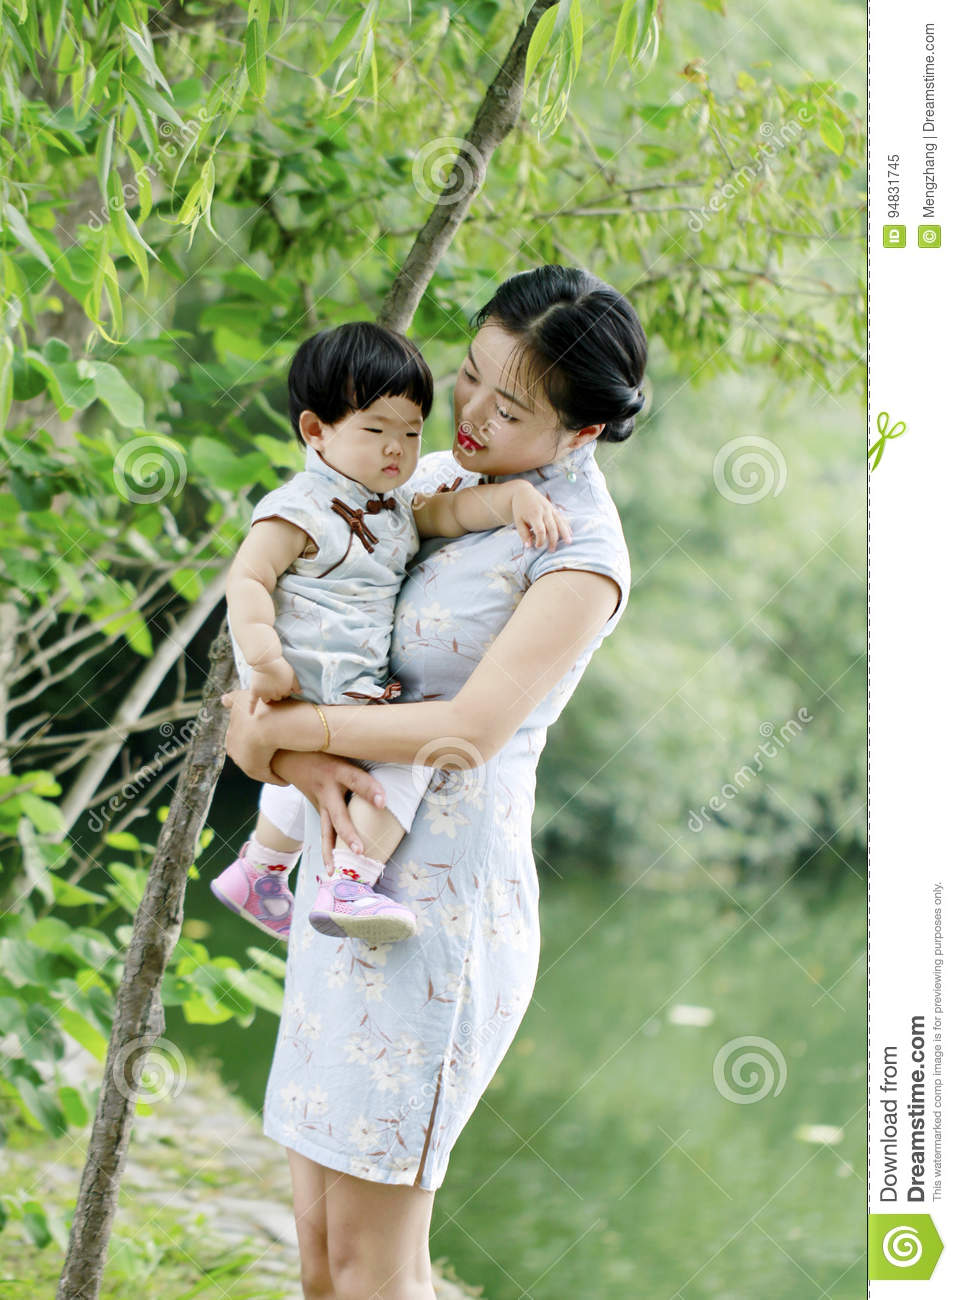 Dating woman with baby